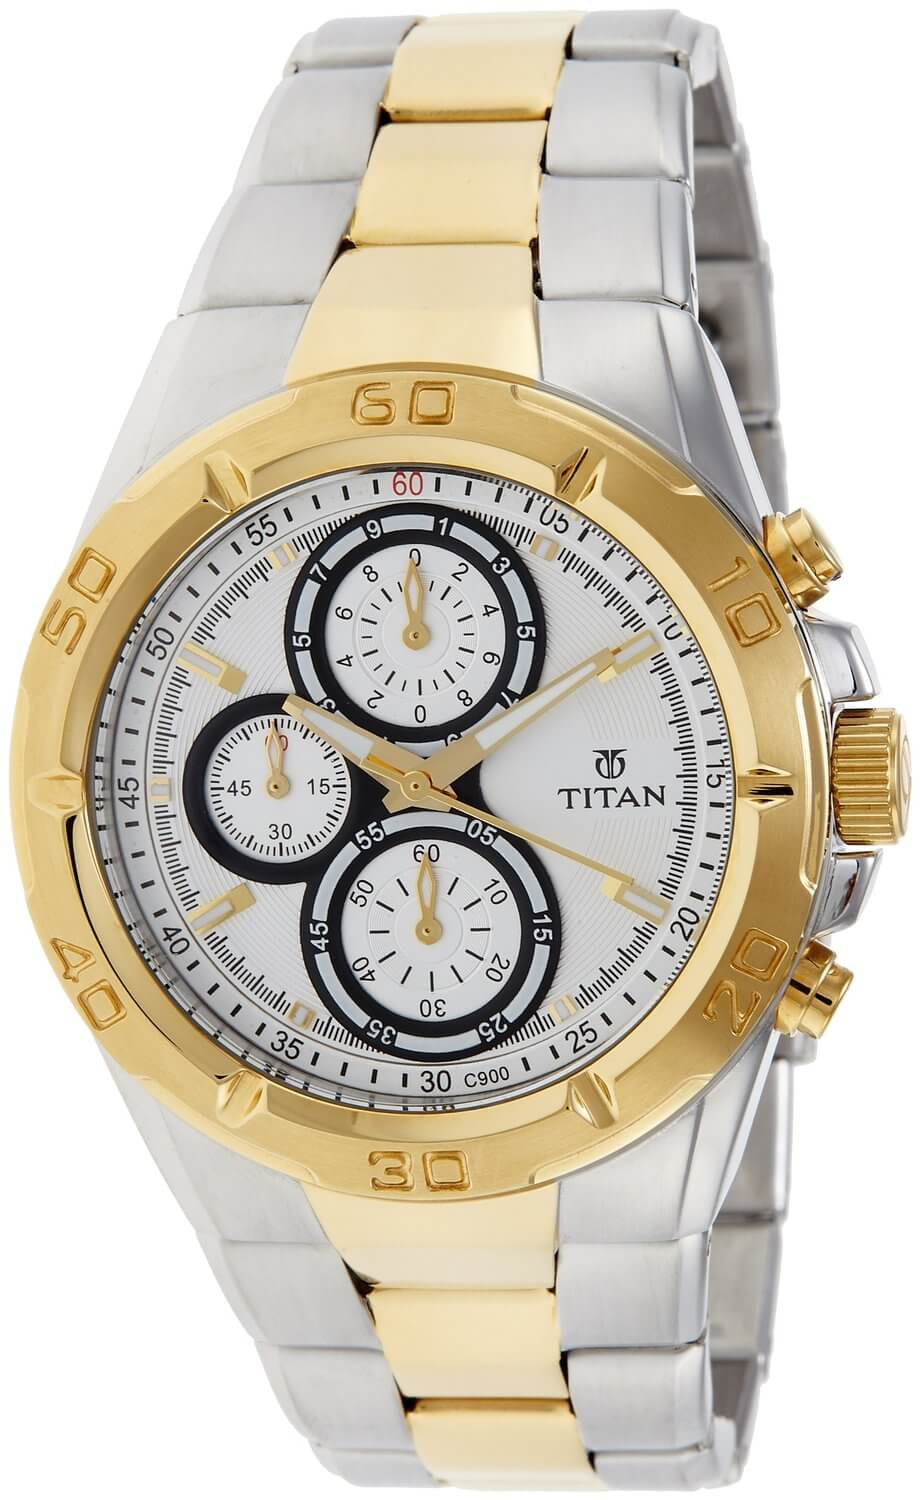 Chronograph Watches For Men - Up to 50% Off - Watchista